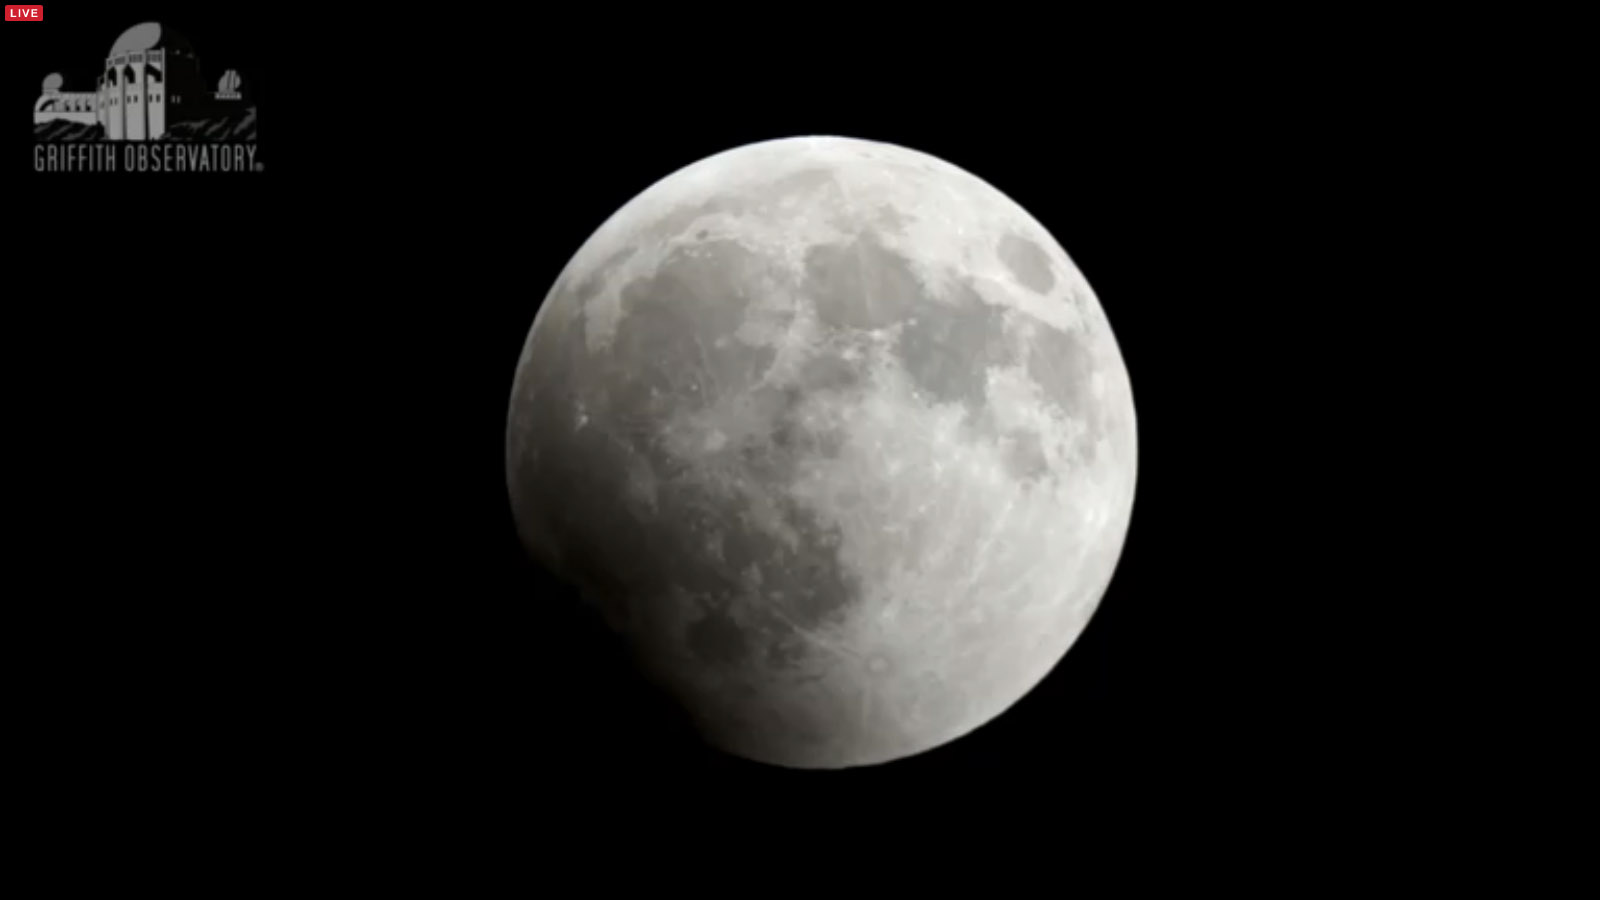 Total Lunar Eclipse Begins: April 4, 2015